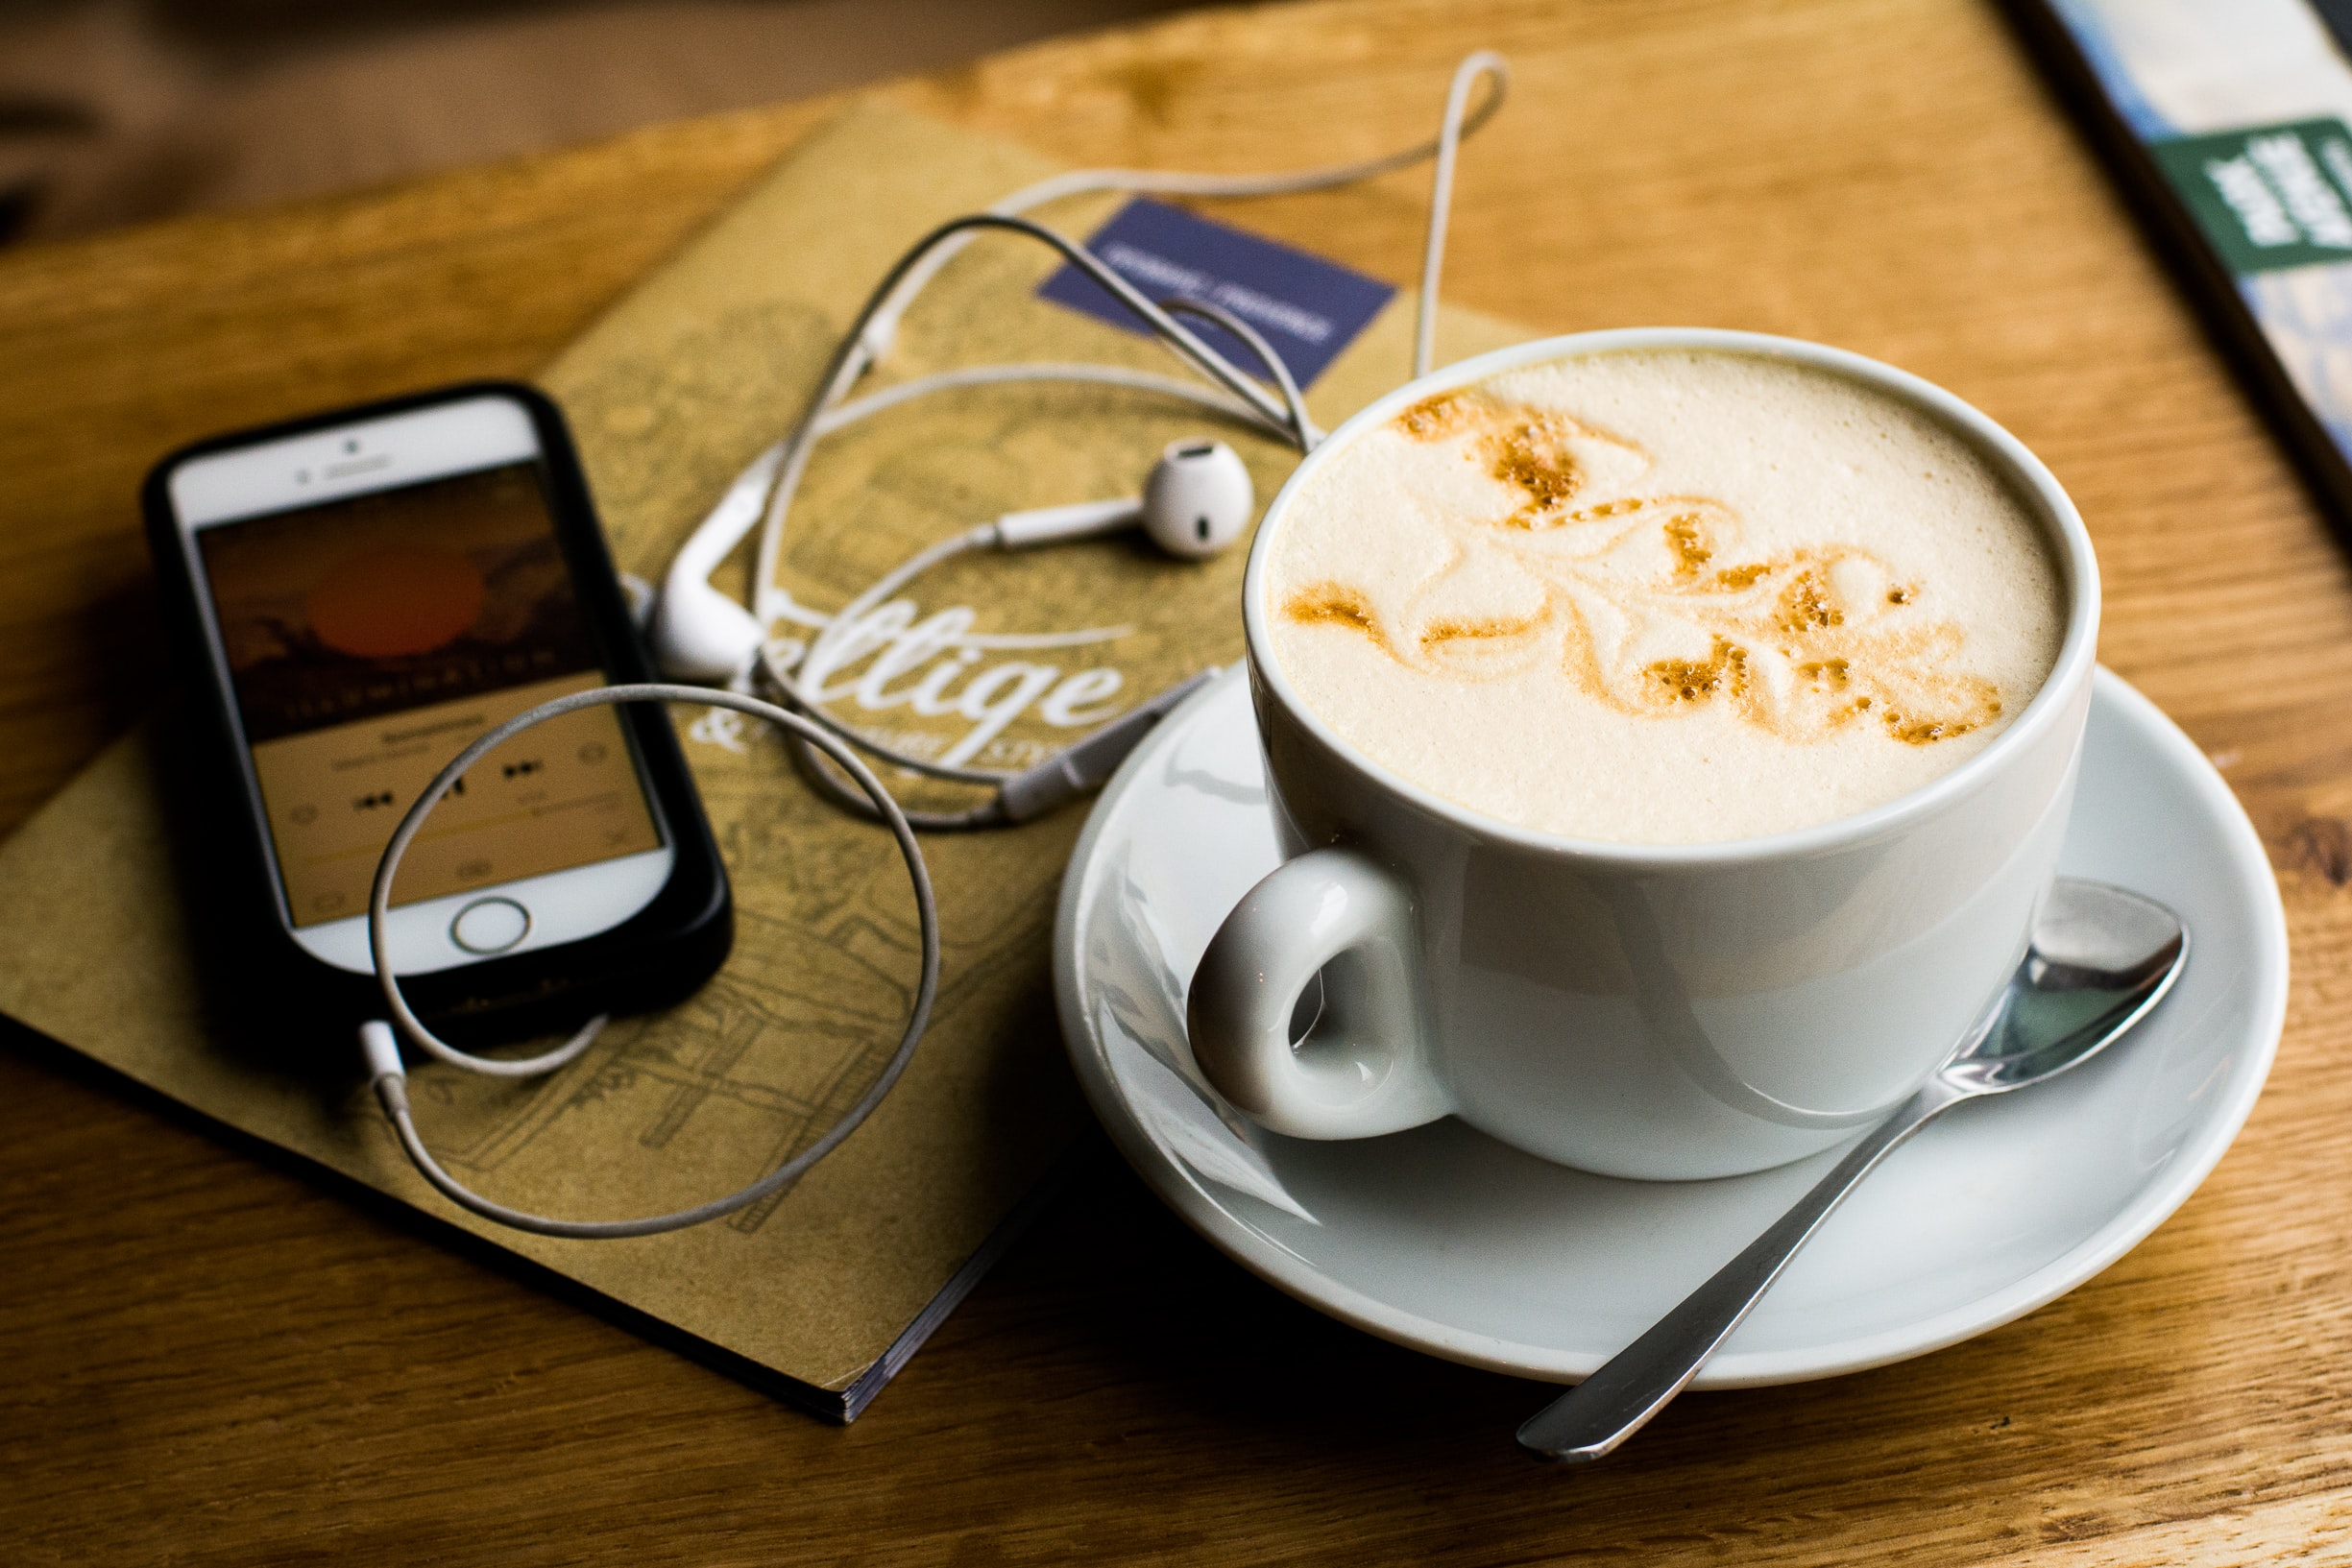 A cup of latte and an iPhone with a music app open on a table